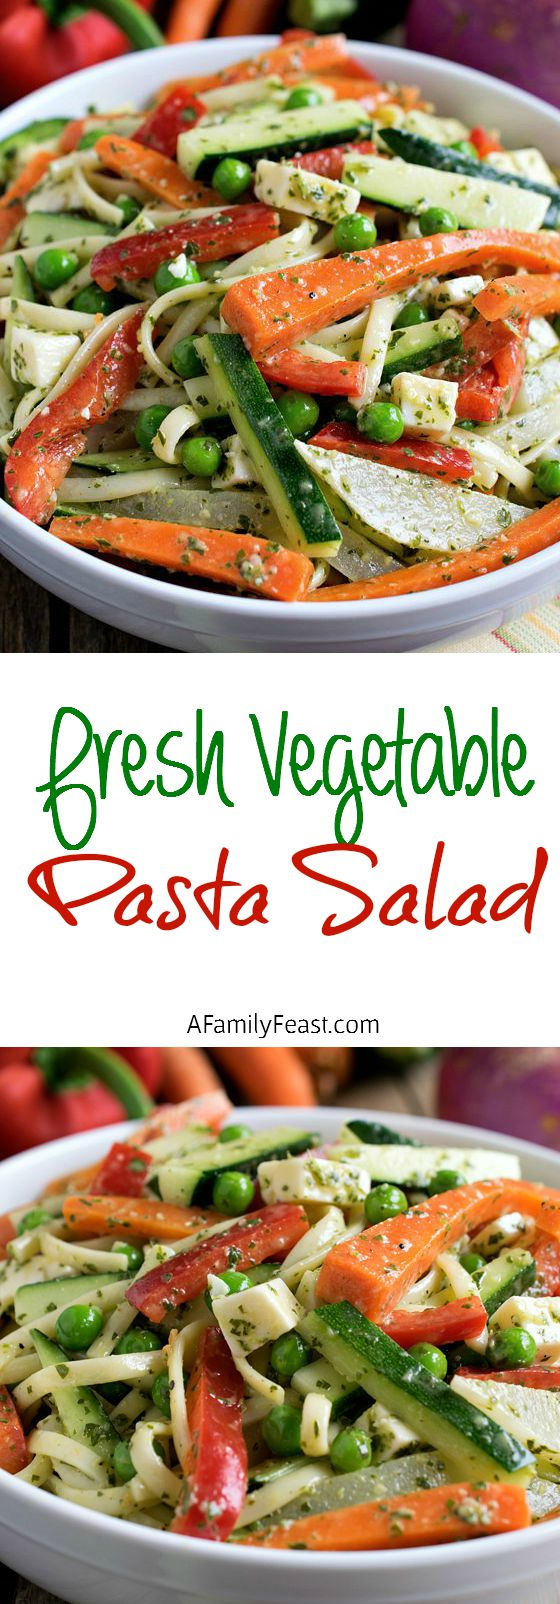 Fresh Vegetable Pasta Salad - An easy, delicious pasta salad. Make it ahead of time and pack up for lunches on-the-go! Perfect for busy families!